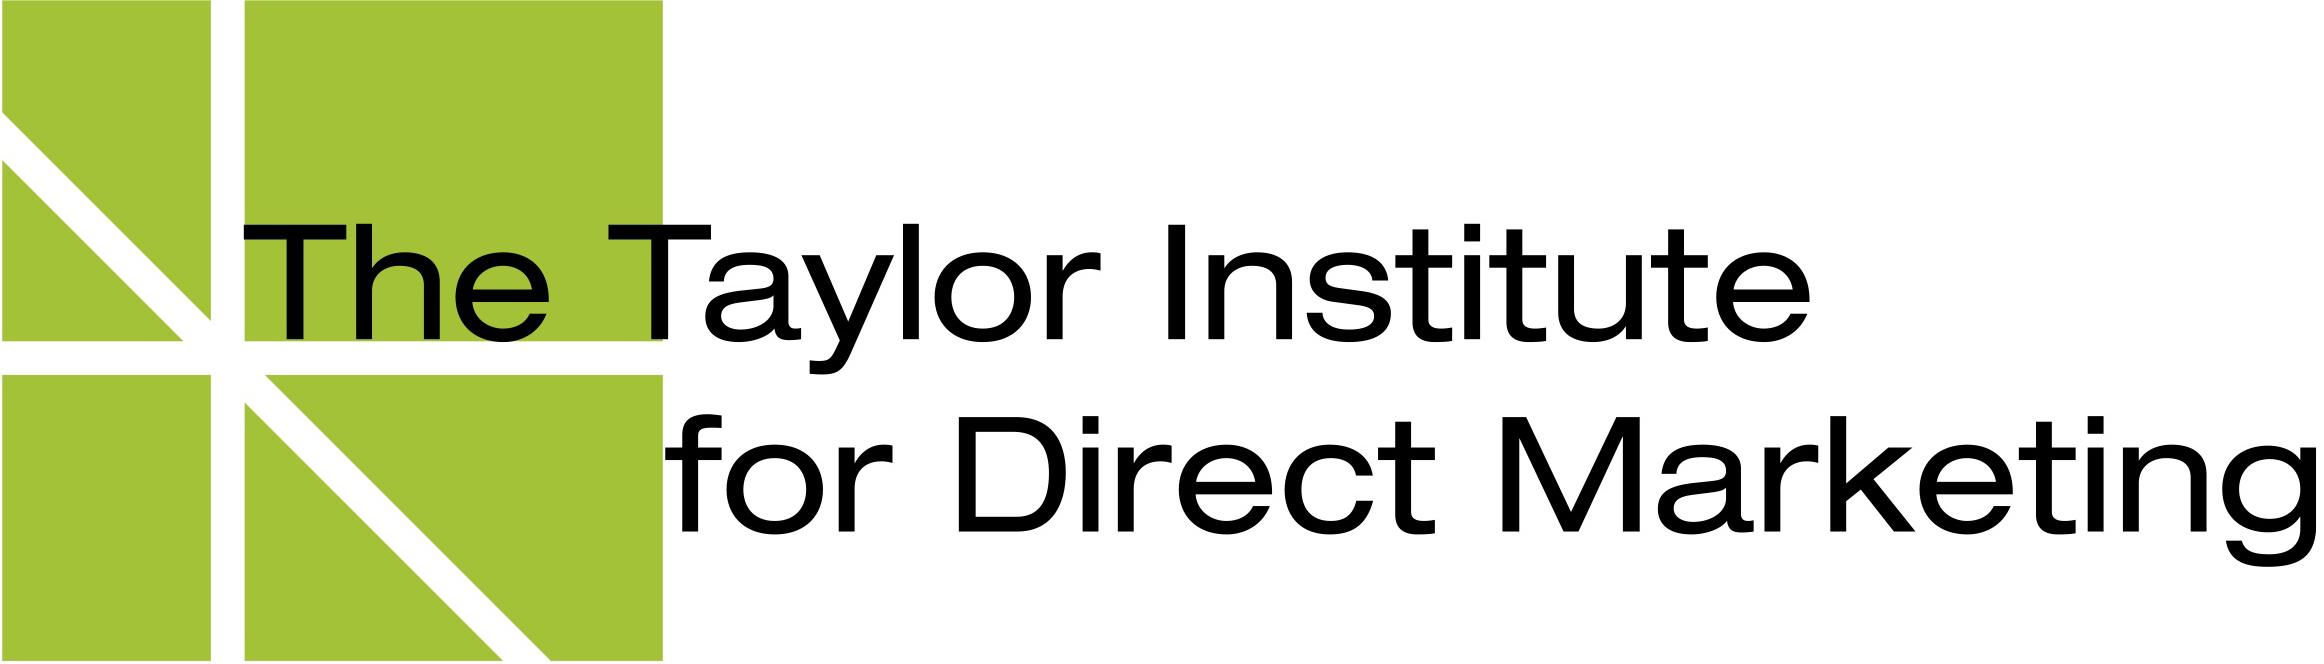 The Taylor Institute for Direct Marketing